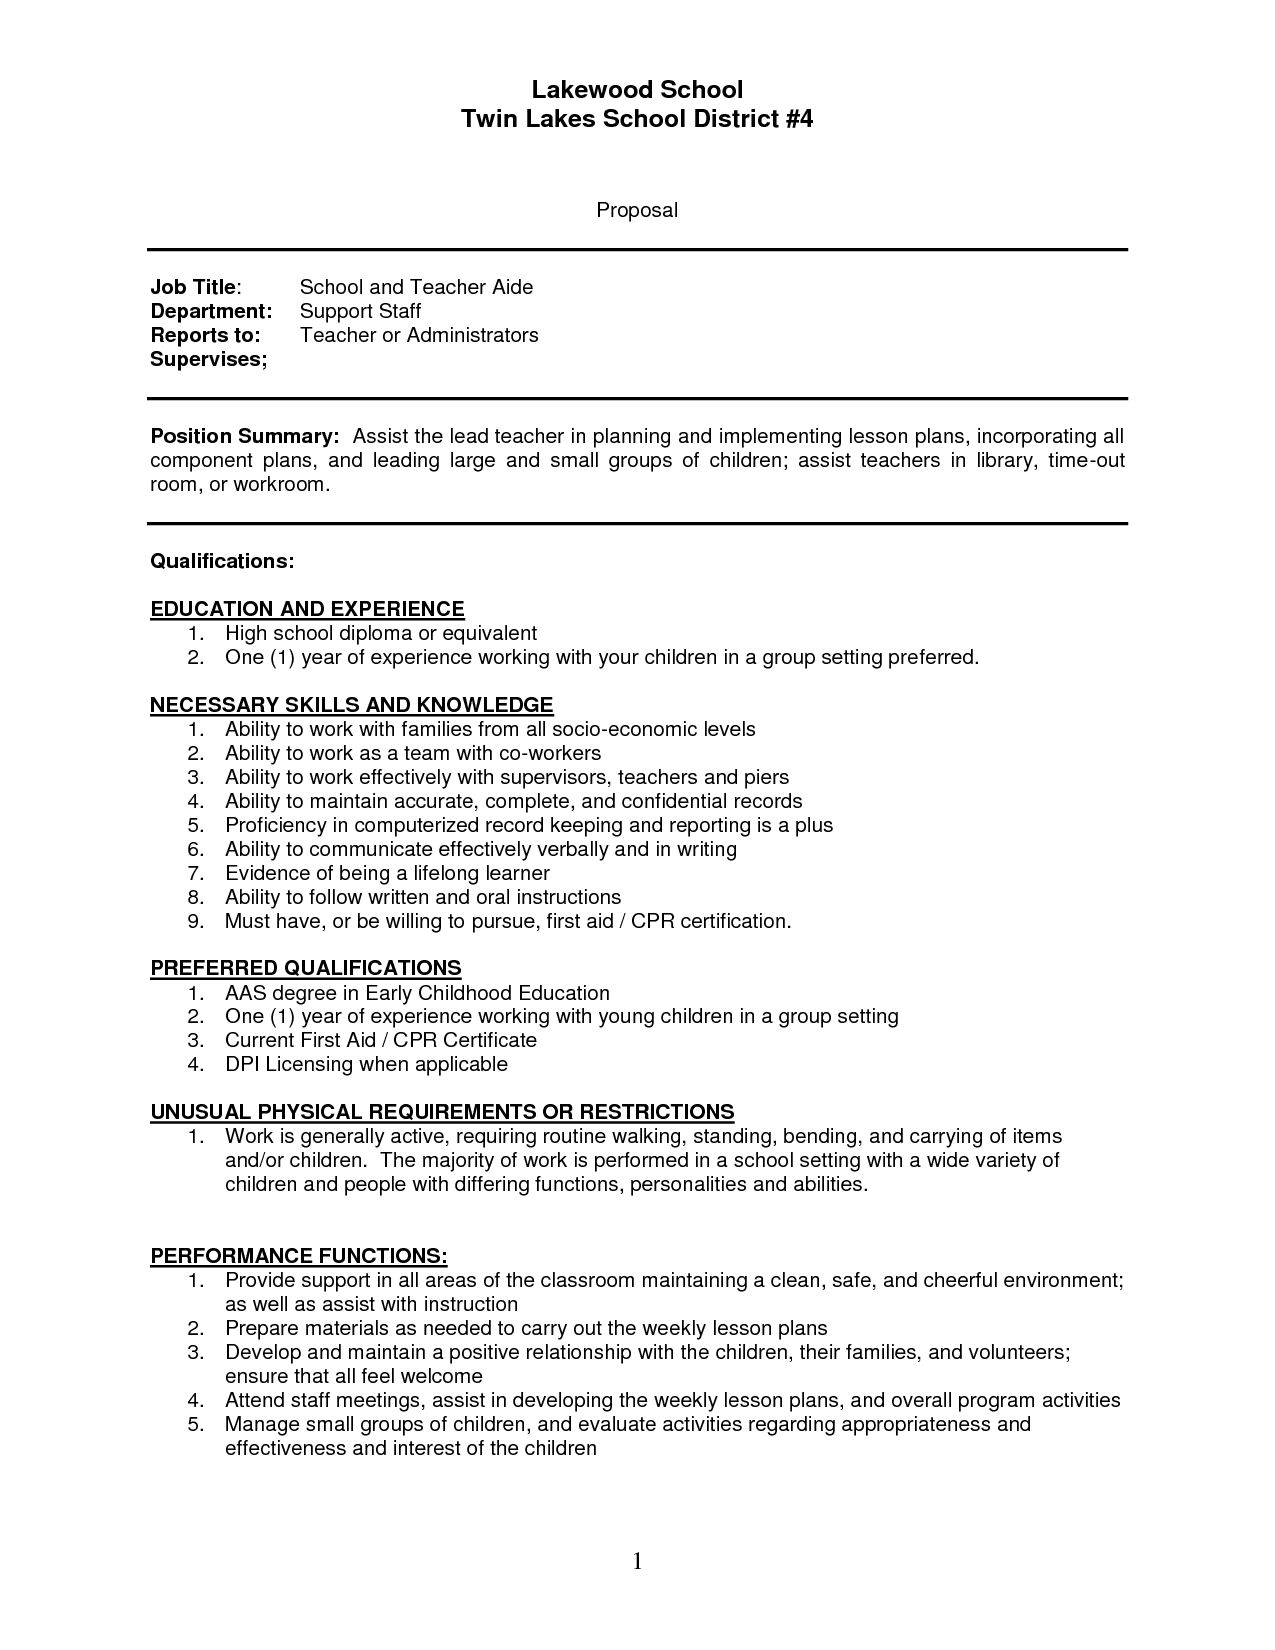 Bsa Analyst Sample Resume New Sample Resume Teachers Aide Assistant Cover Letter Teacher Sap .